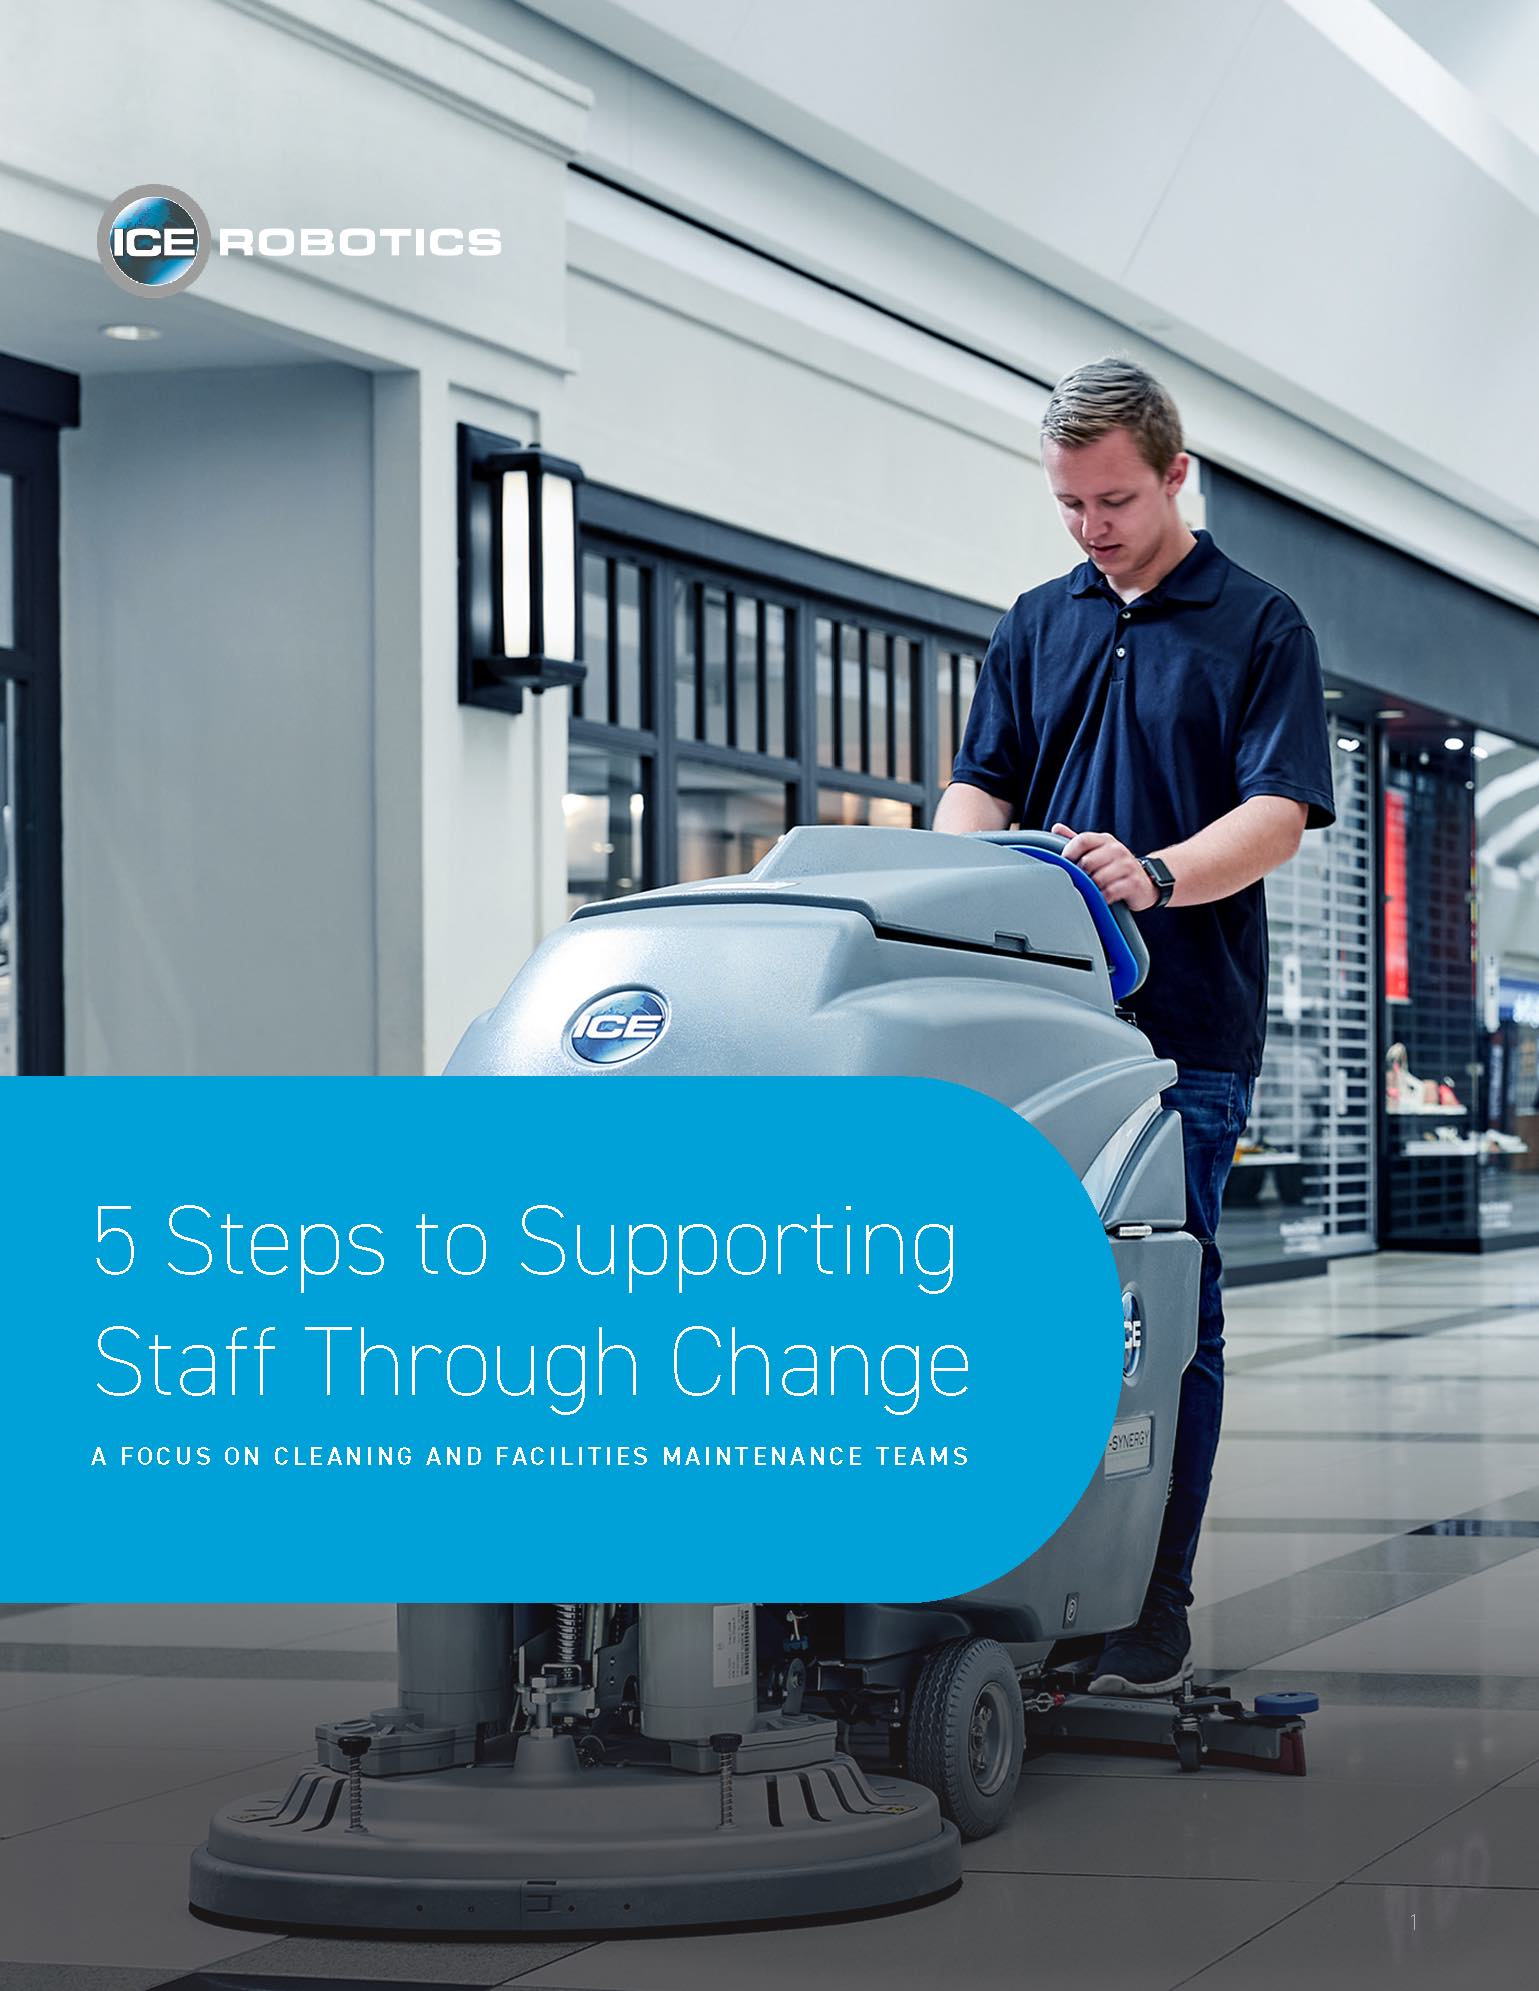 5 Steps to Supporting Staff Through Change